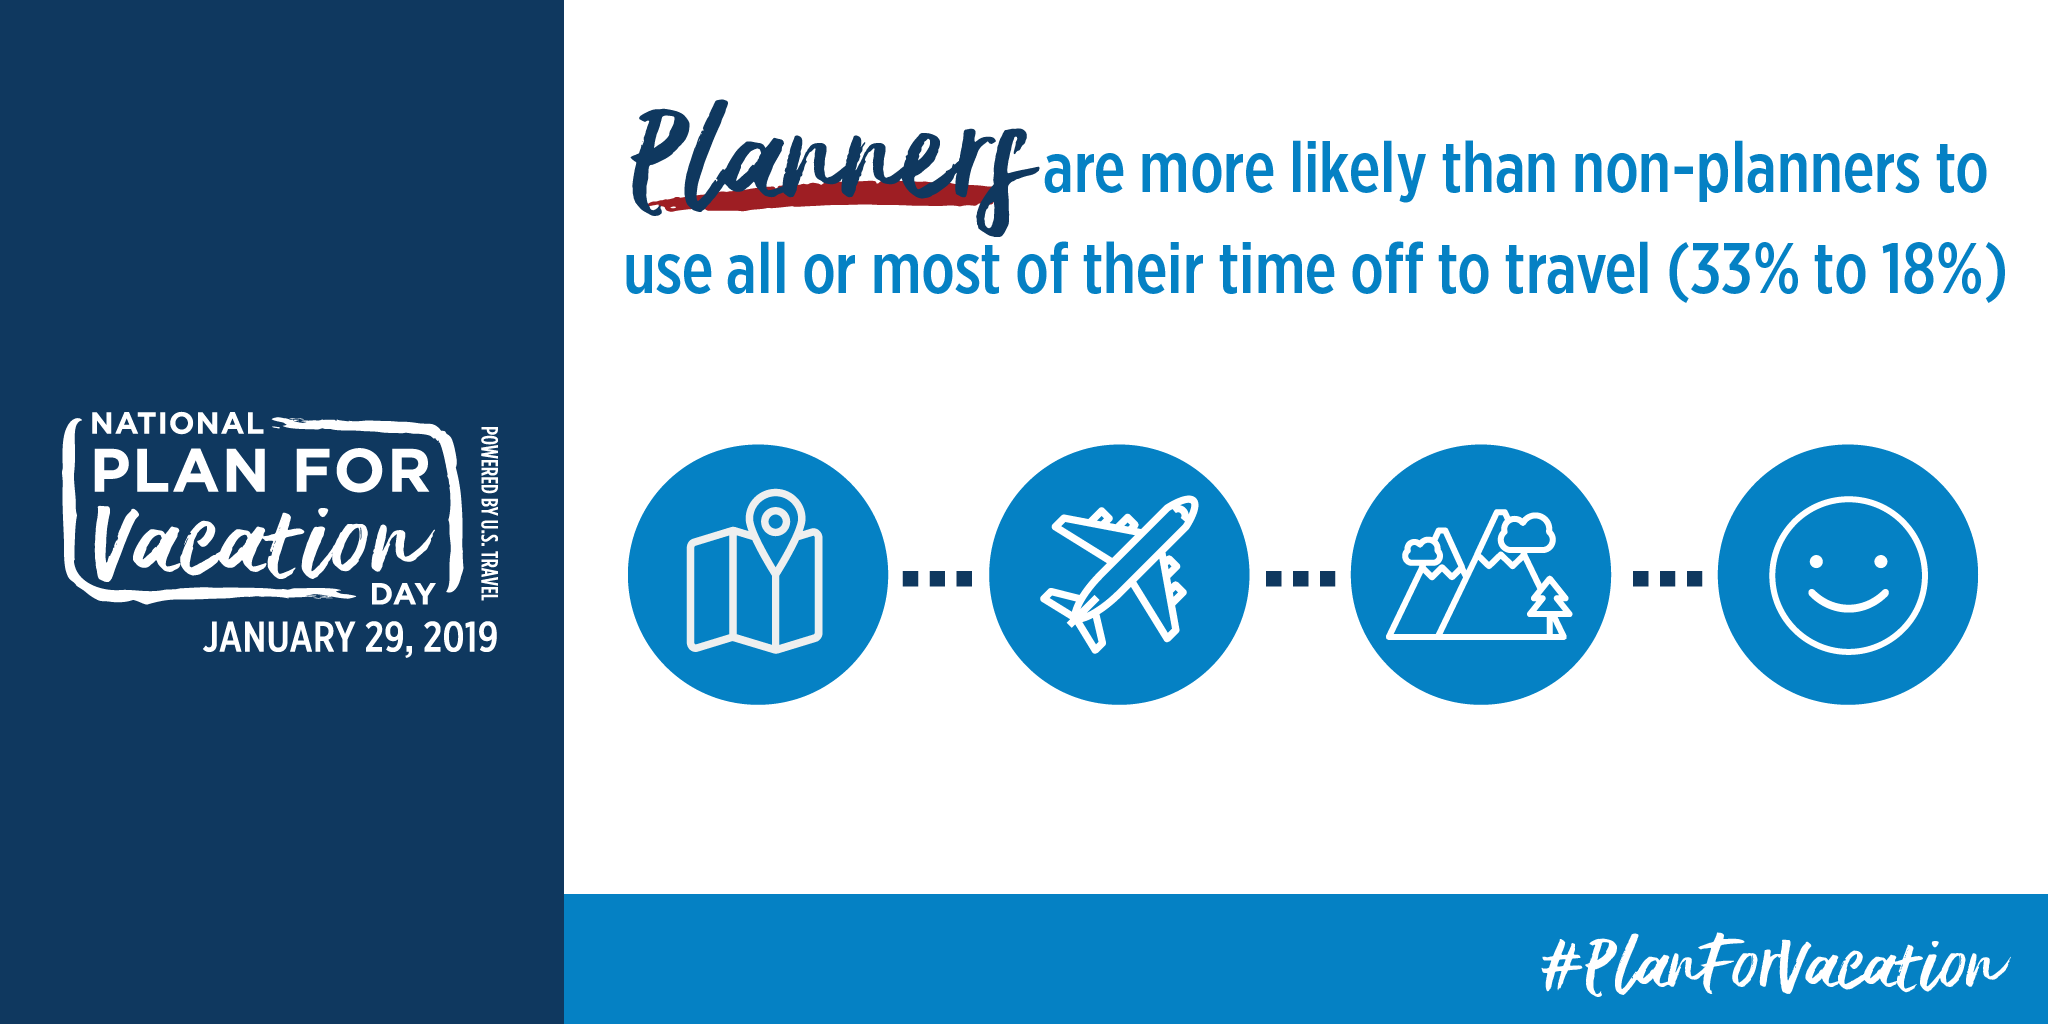 Planners are more likely than non-planners to use all or most their time off to travel